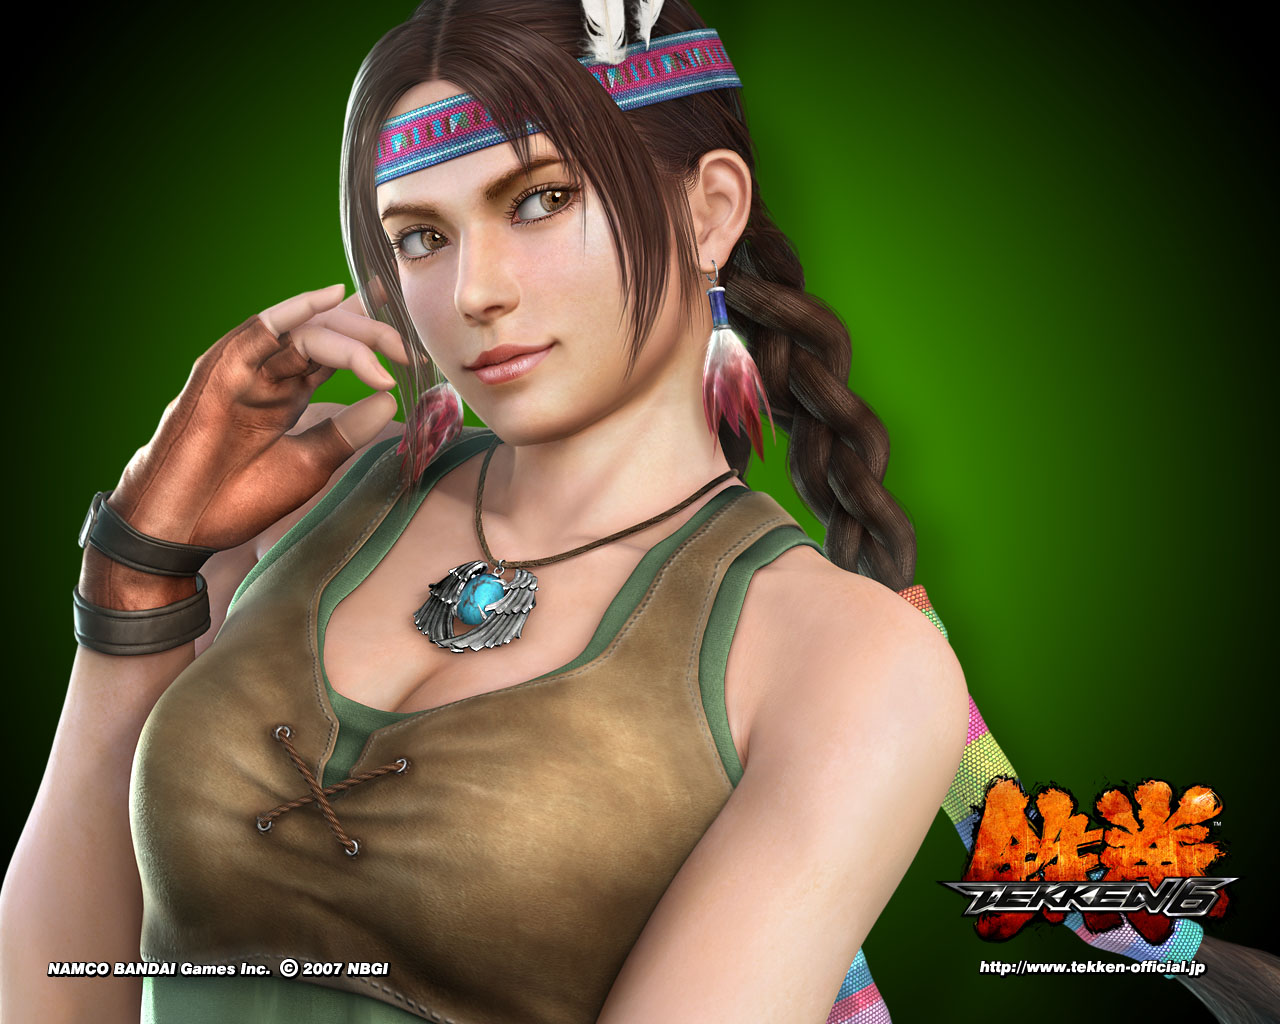 Julia Chang Gallery The Tekken Wiki Wikia - julia chang in tekken wallpapers